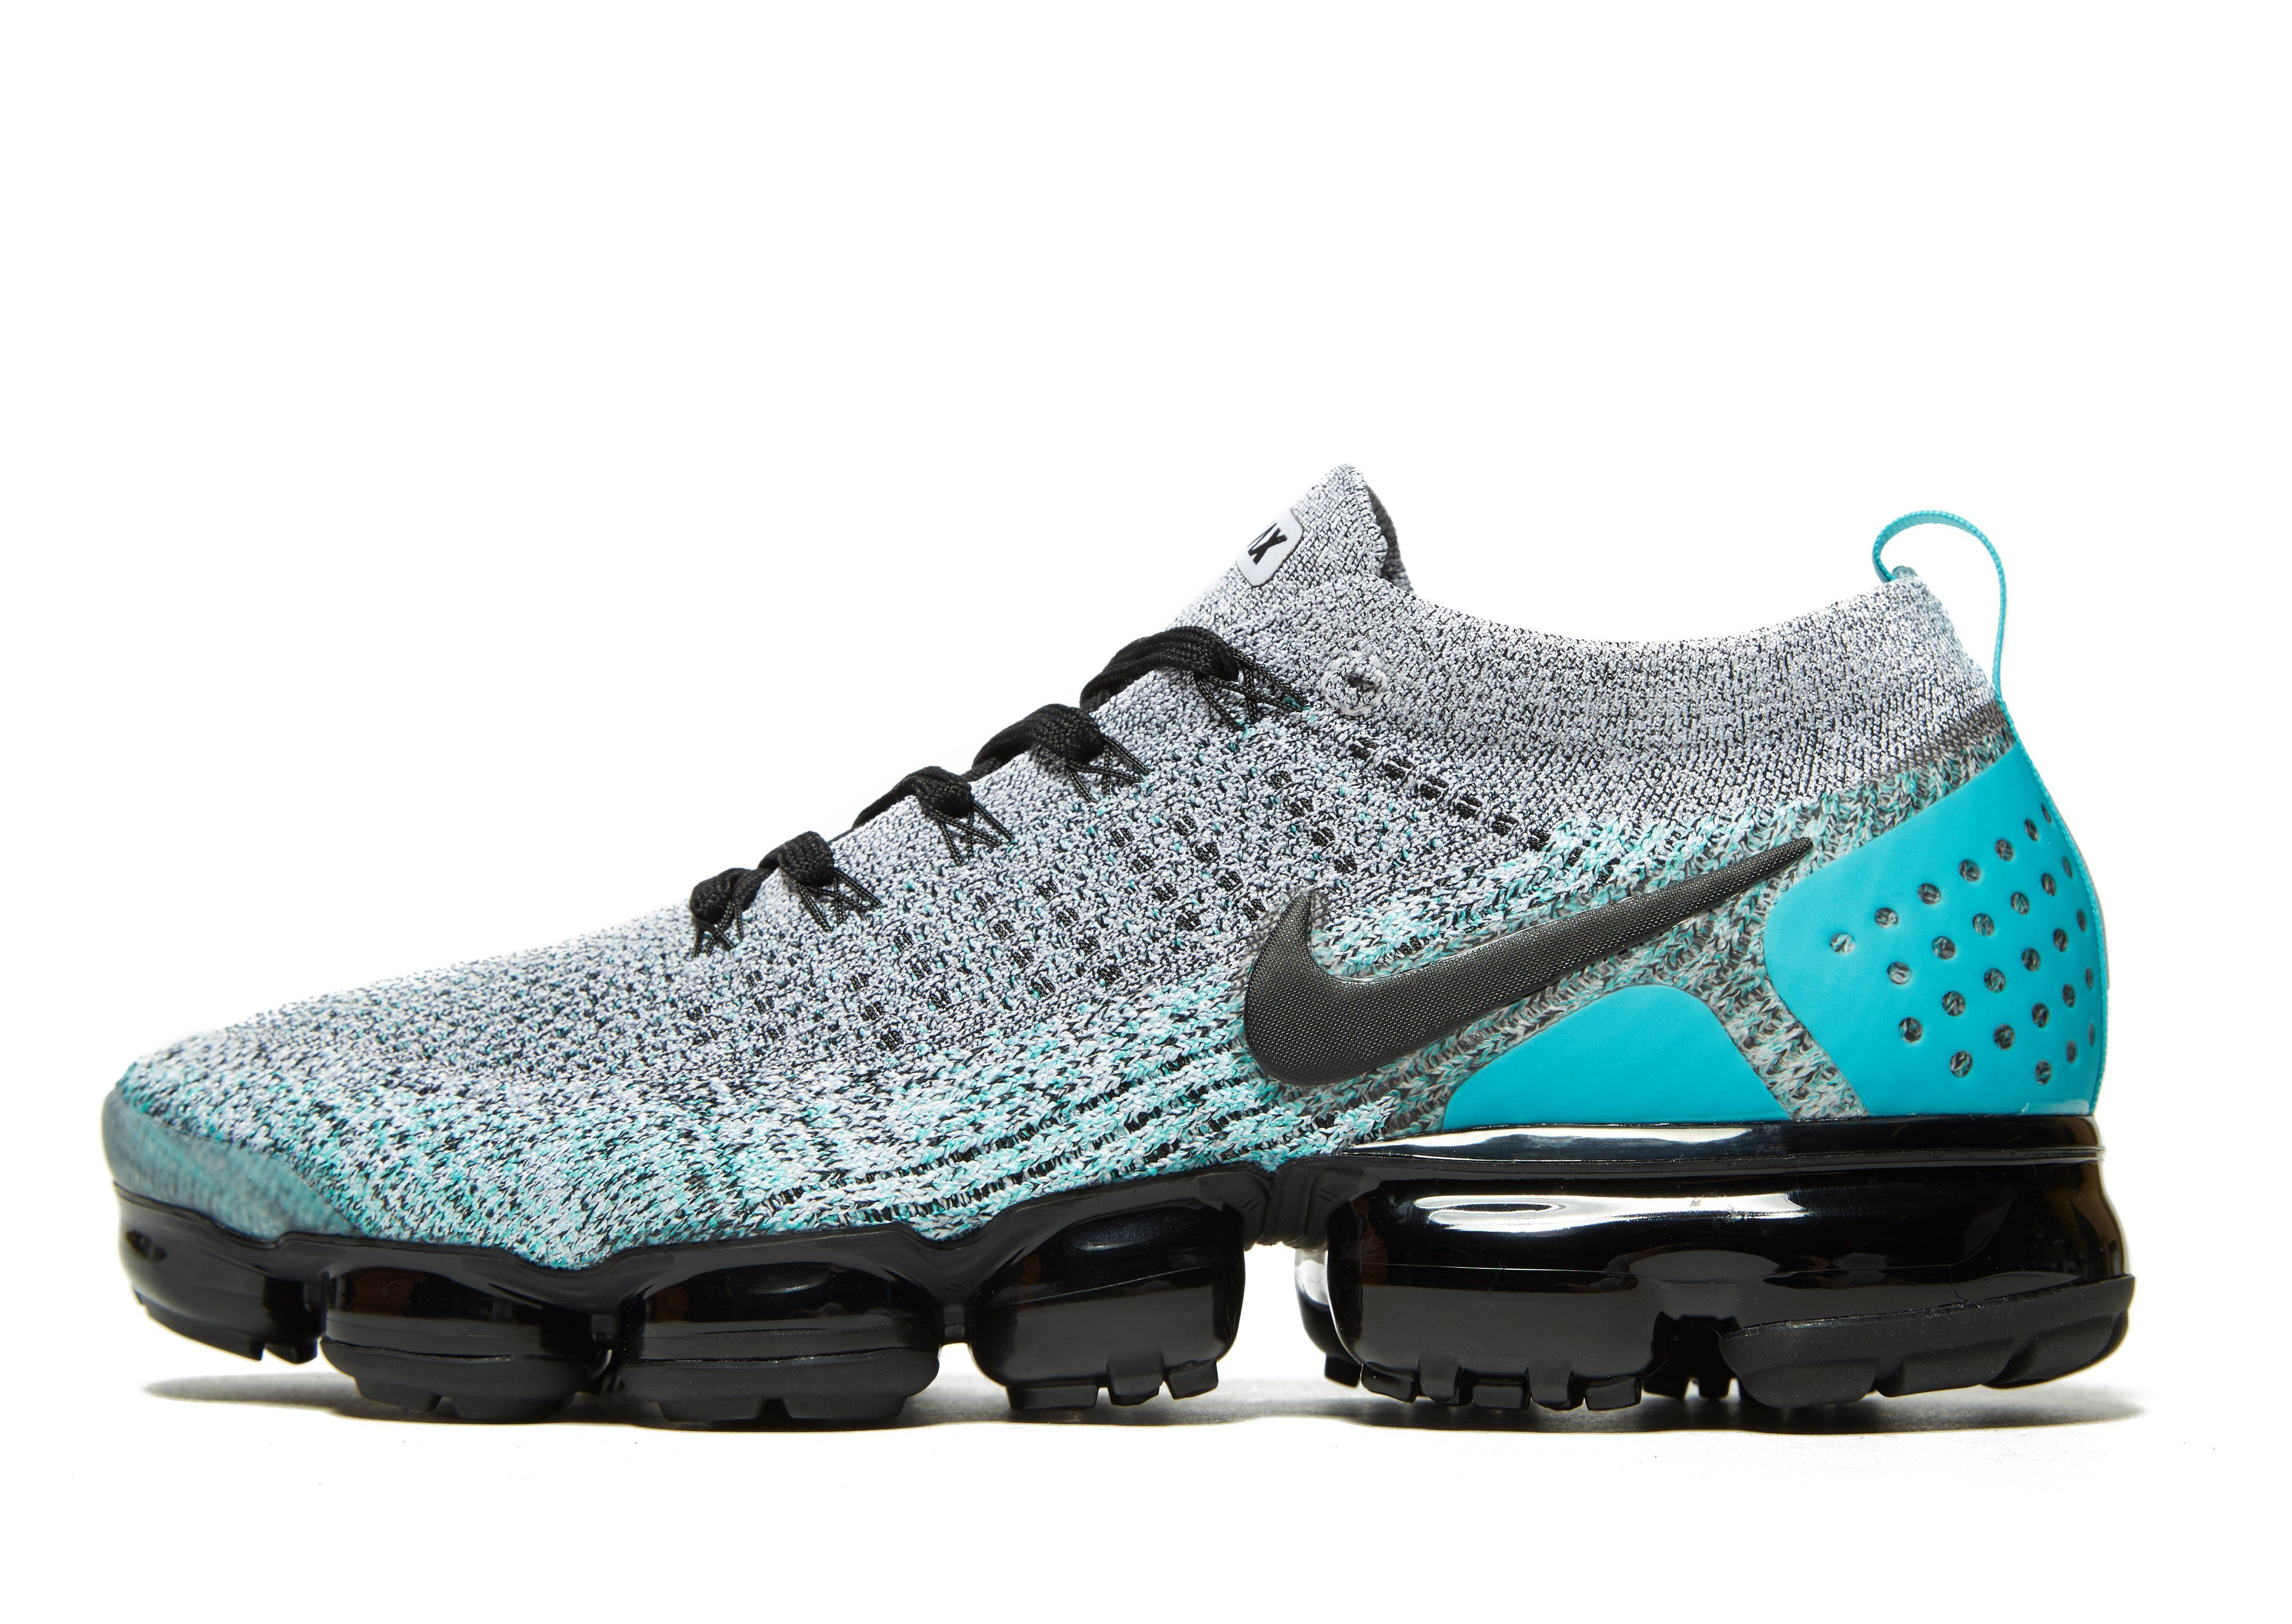 hot sale online 6caff 0cd4f Nike Air Vapormax Flyknit 2 - Shop online for Nike Air ...